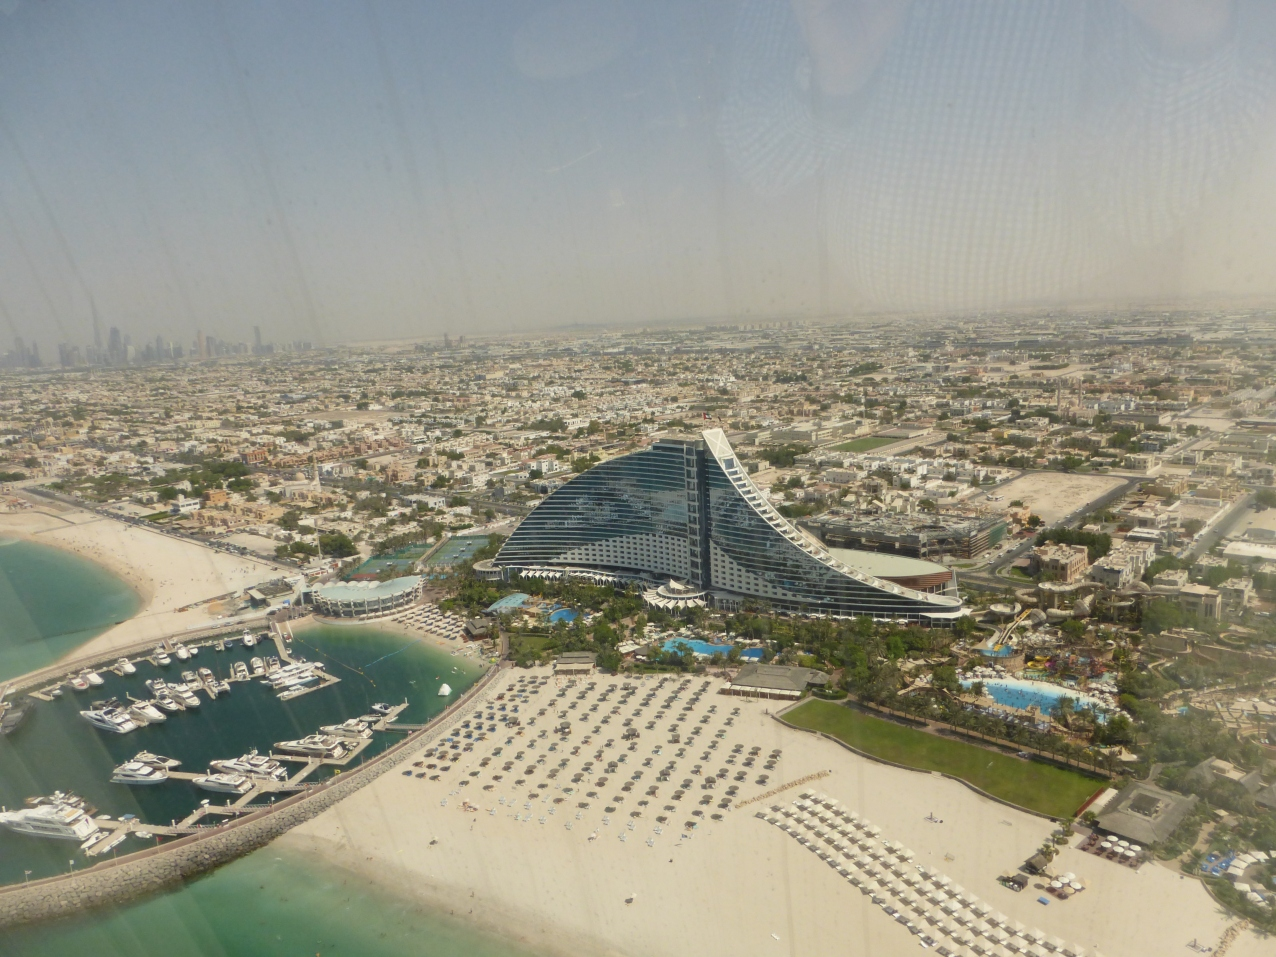 View of Jumeirah Beach Hotel from the Burj Al Arab